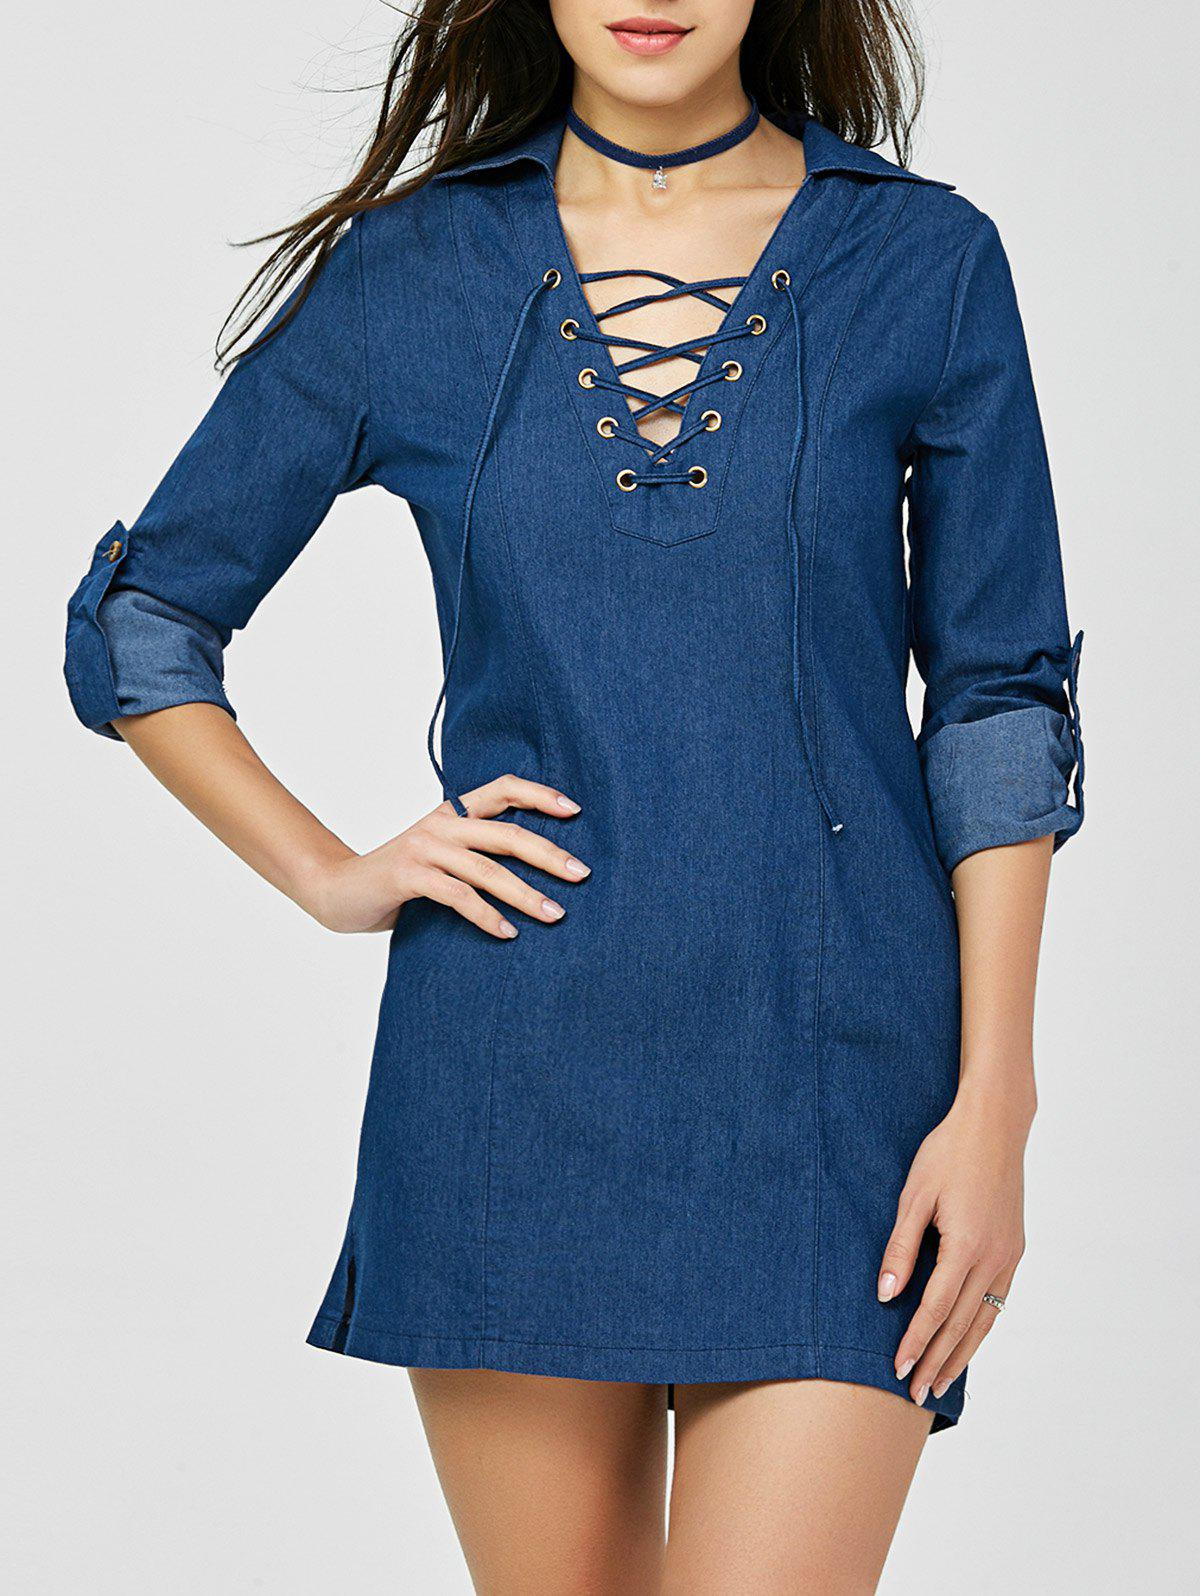 V Neck Mini Lace-up Denim Dress - DENIM BLUE M